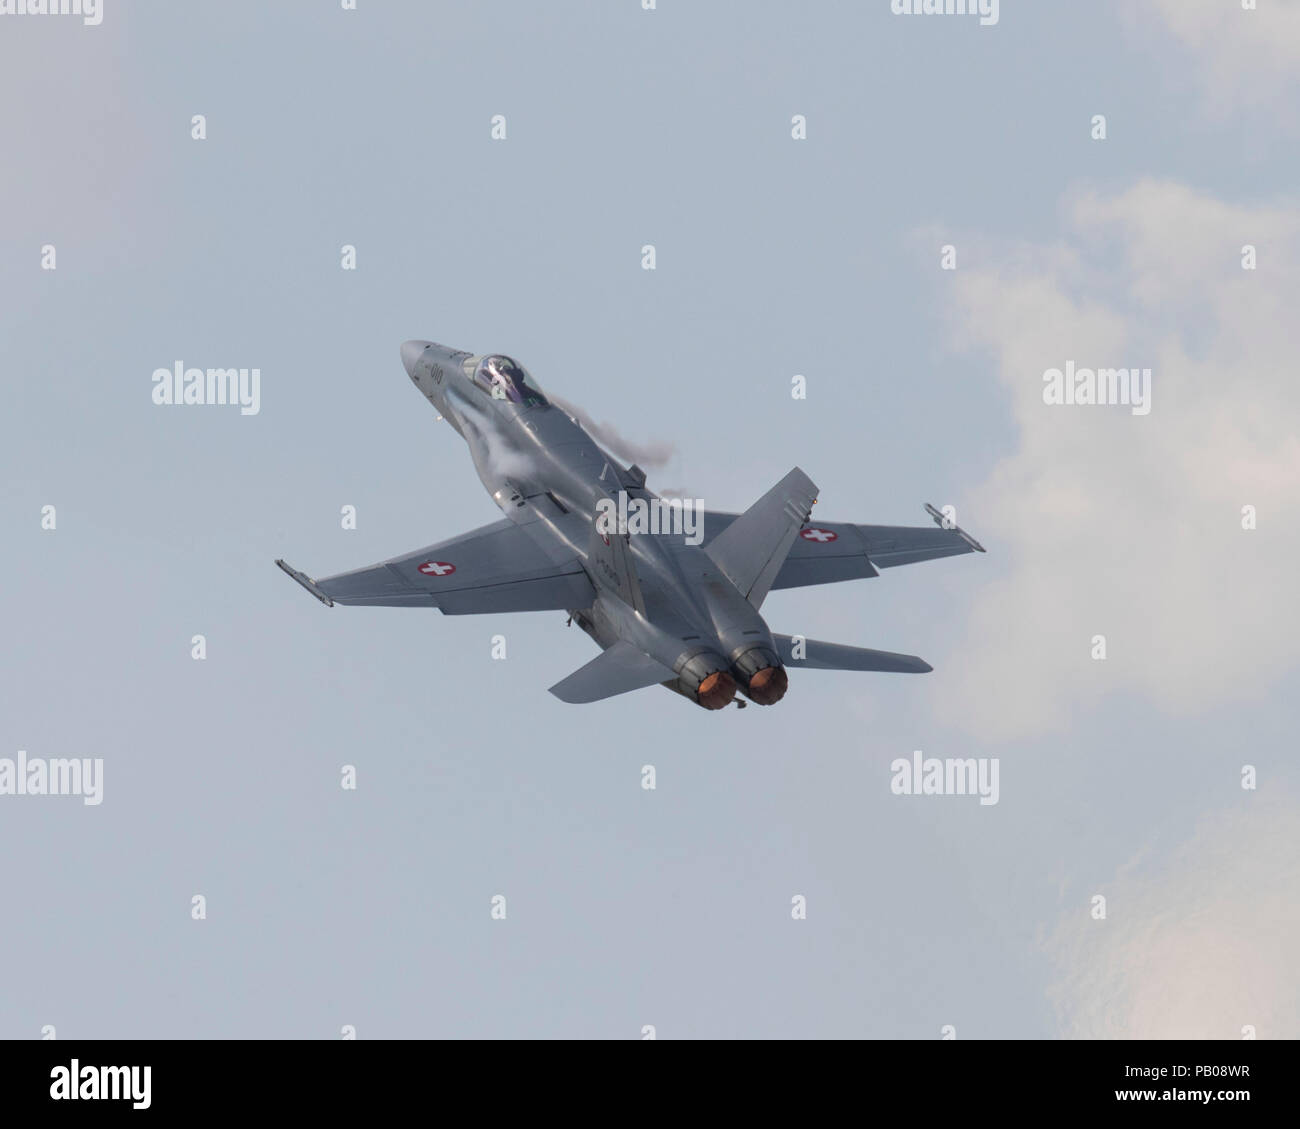 Swiss Air Force Boeing F/A-18C Hornet jet fighter aircraft flying at the 2018 Royal International Air Tattoo - Stock Image